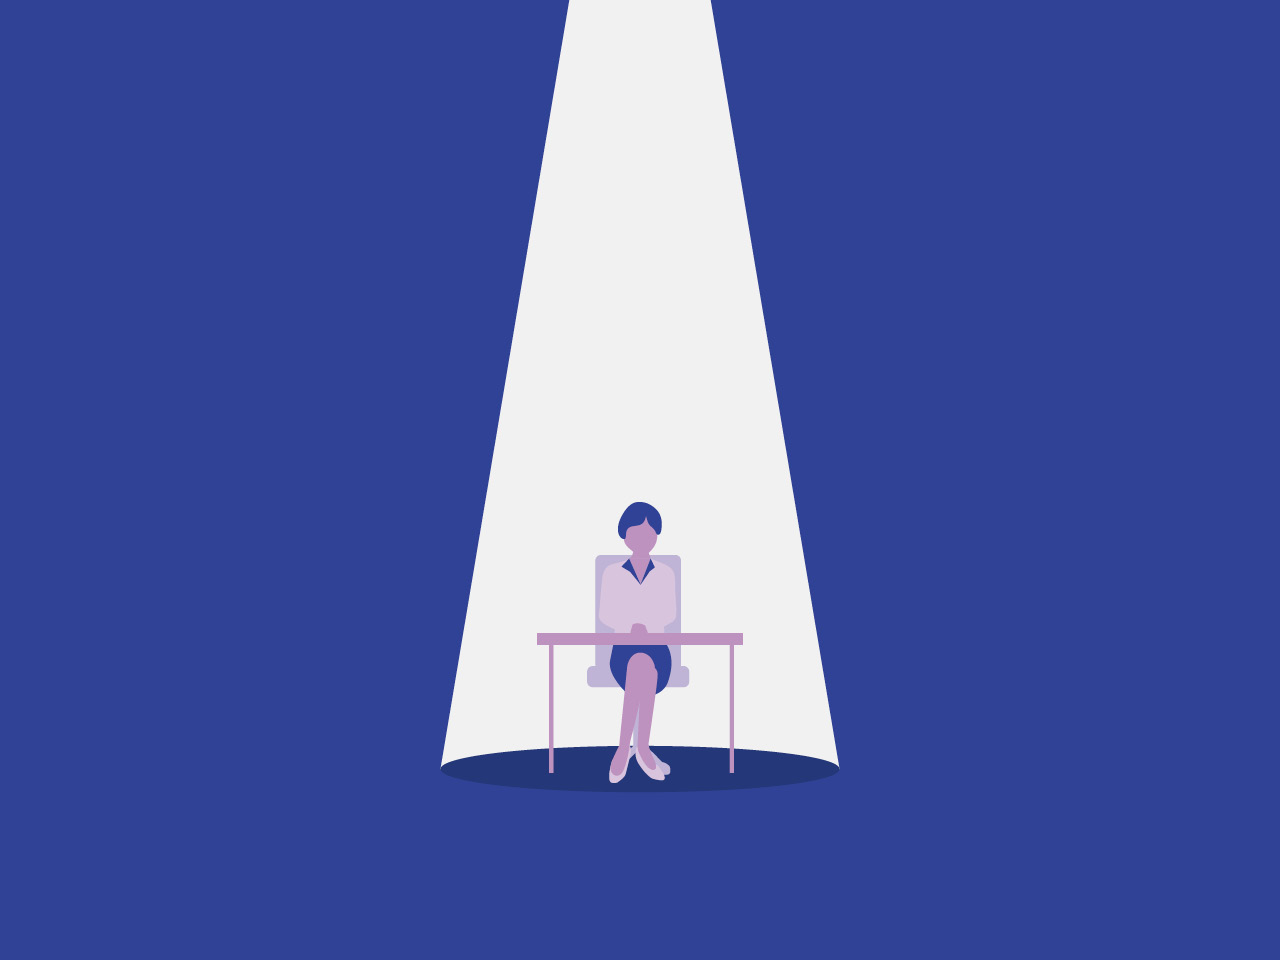 loneliness feature image- a cartoon minister sits alone at a table on a blue background